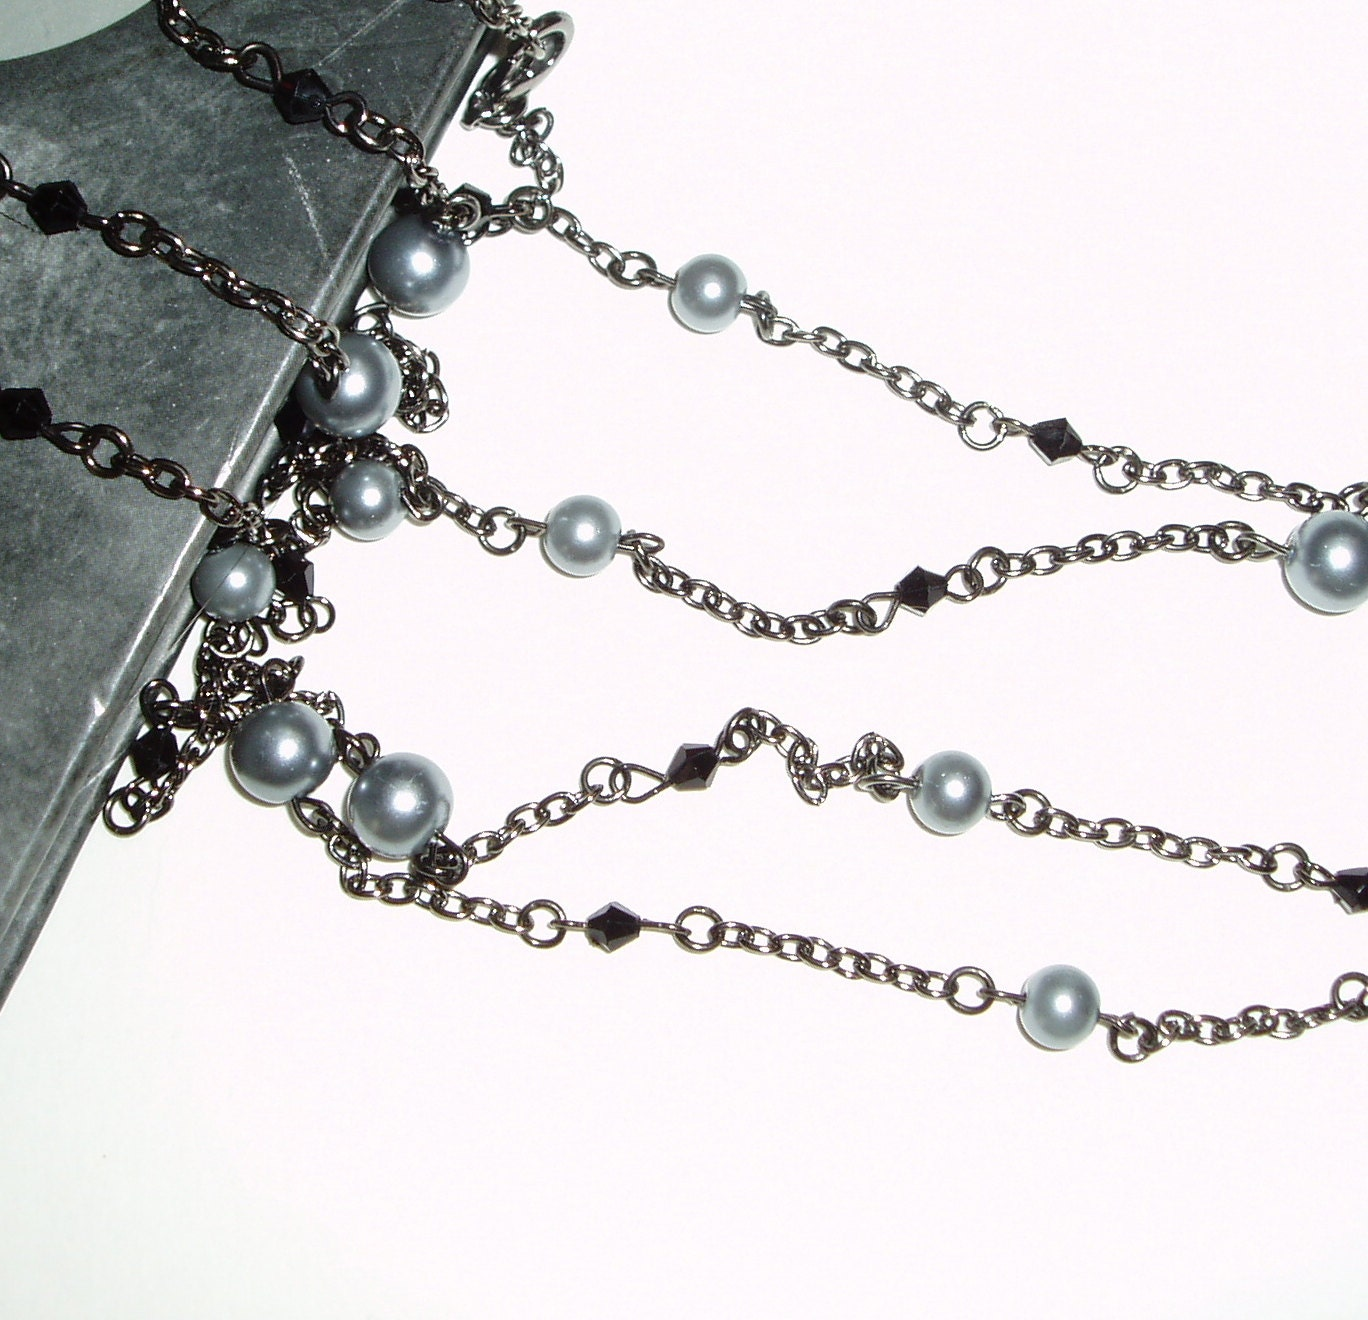 Long Gray and Black Necklace - Double Strand Gray and Black Beaded Necklace on Gunmetal Chain - ChathamsCrossing